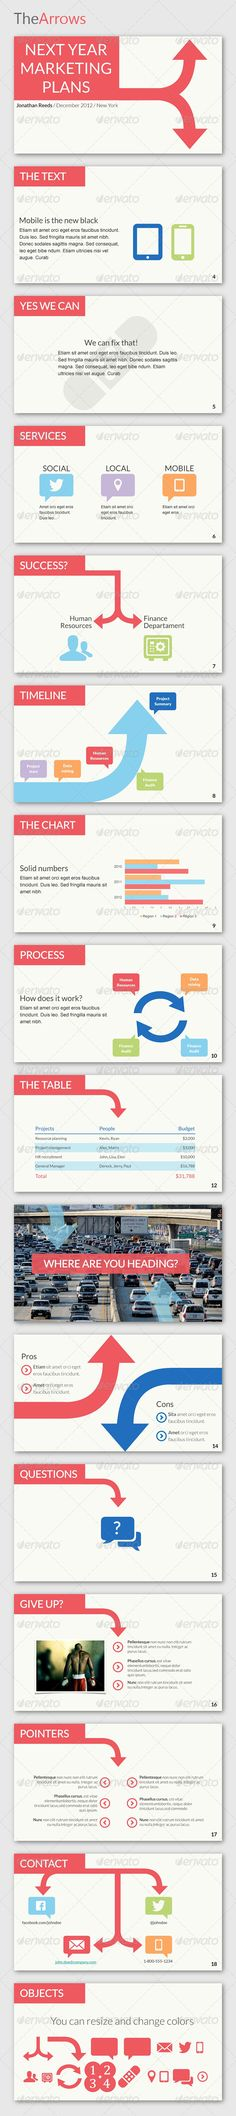 Arrows as cohesive and visual breaks in powerpoint design